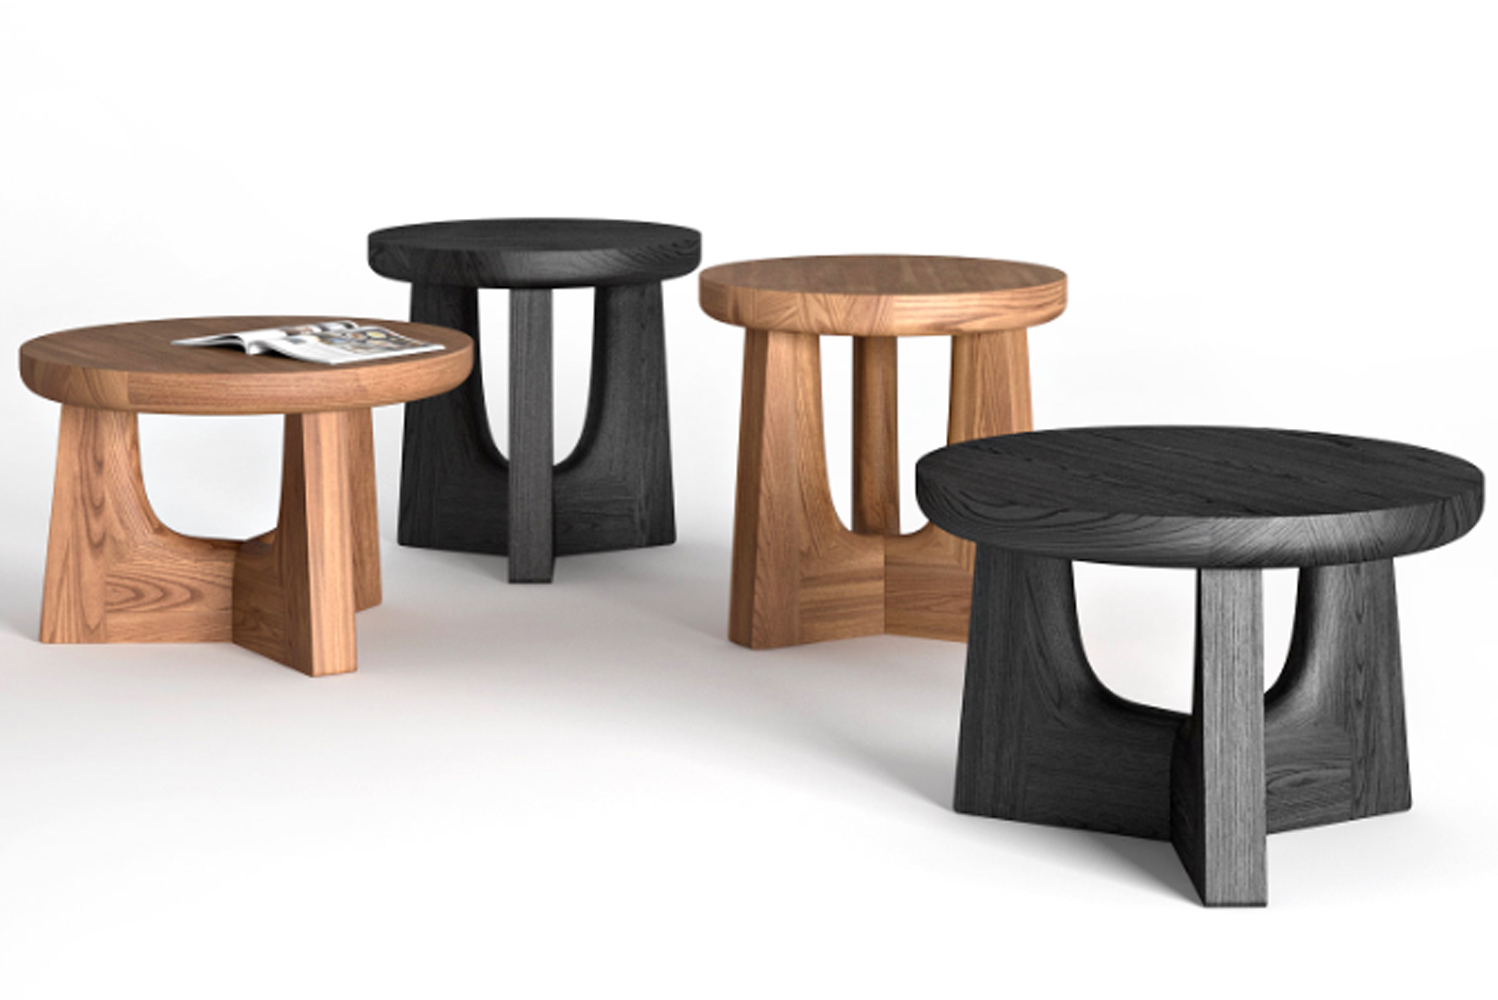 Designed by Jean-Marie Massaud, Nara is handcrafted by Italian artisans, conjoining its legs together to form a sturdy trefoil base.